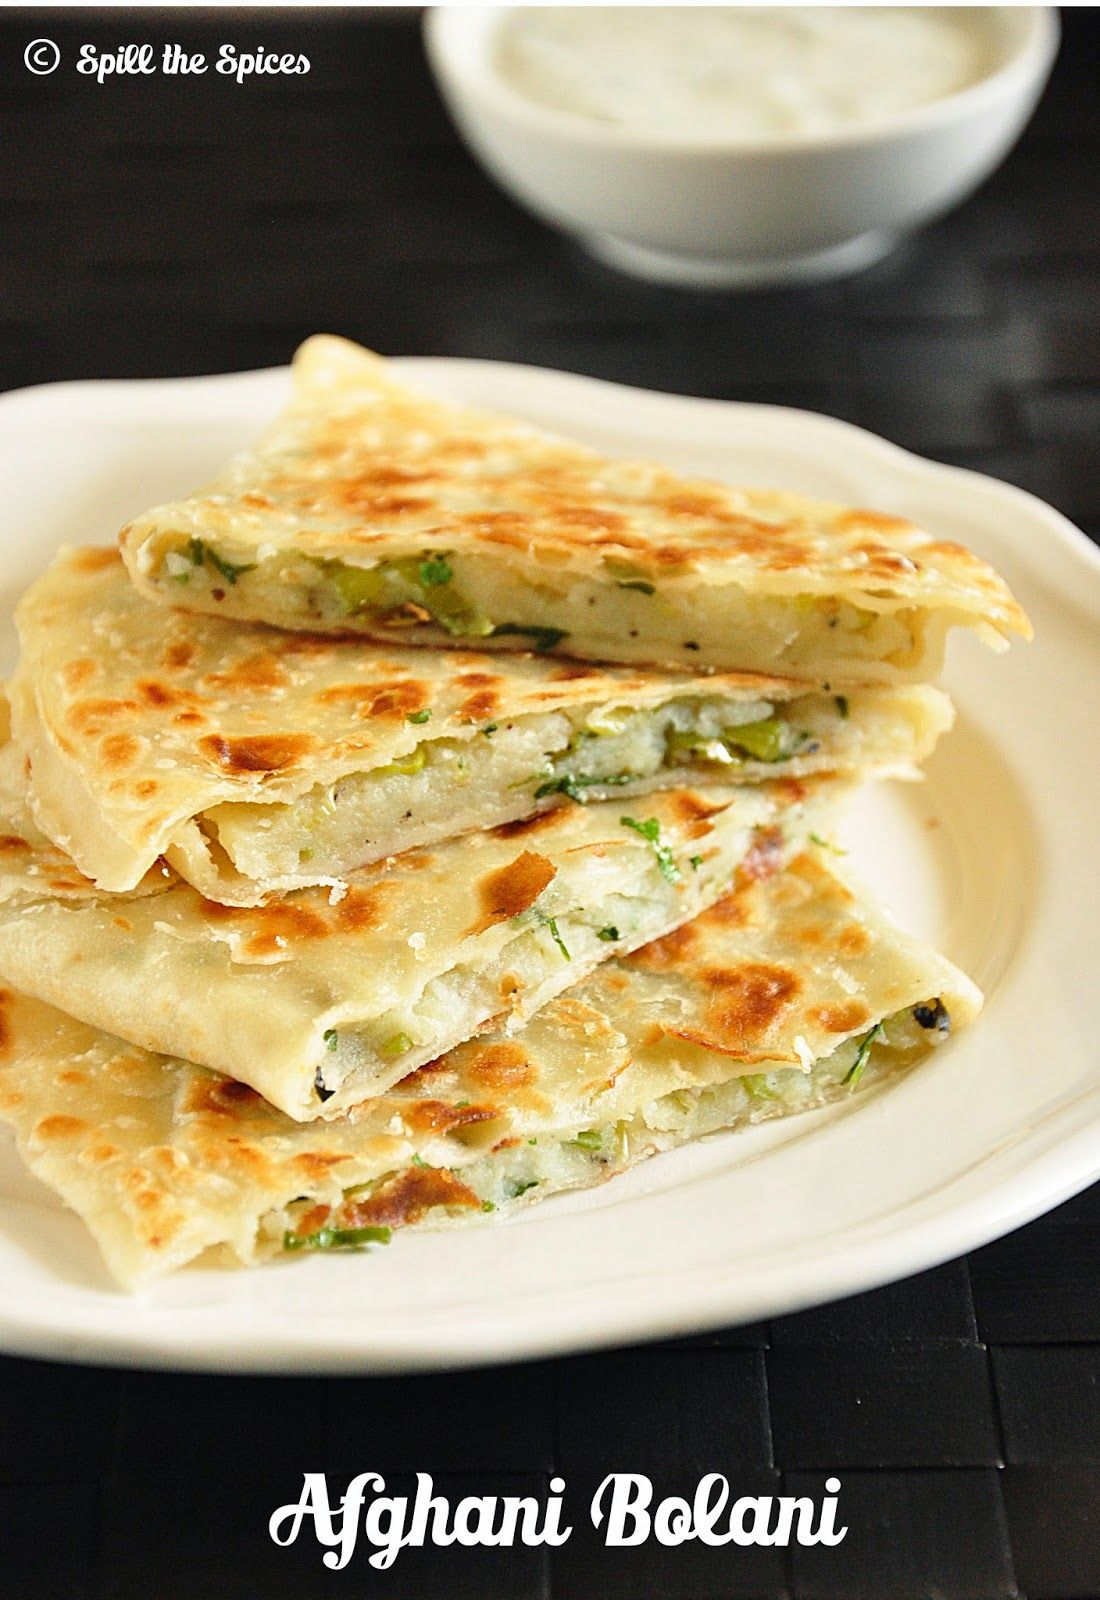 spill the spices bolani afghani potato stuffed flatbread recipes pinterest baguette. Black Bedroom Furniture Sets. Home Design Ideas